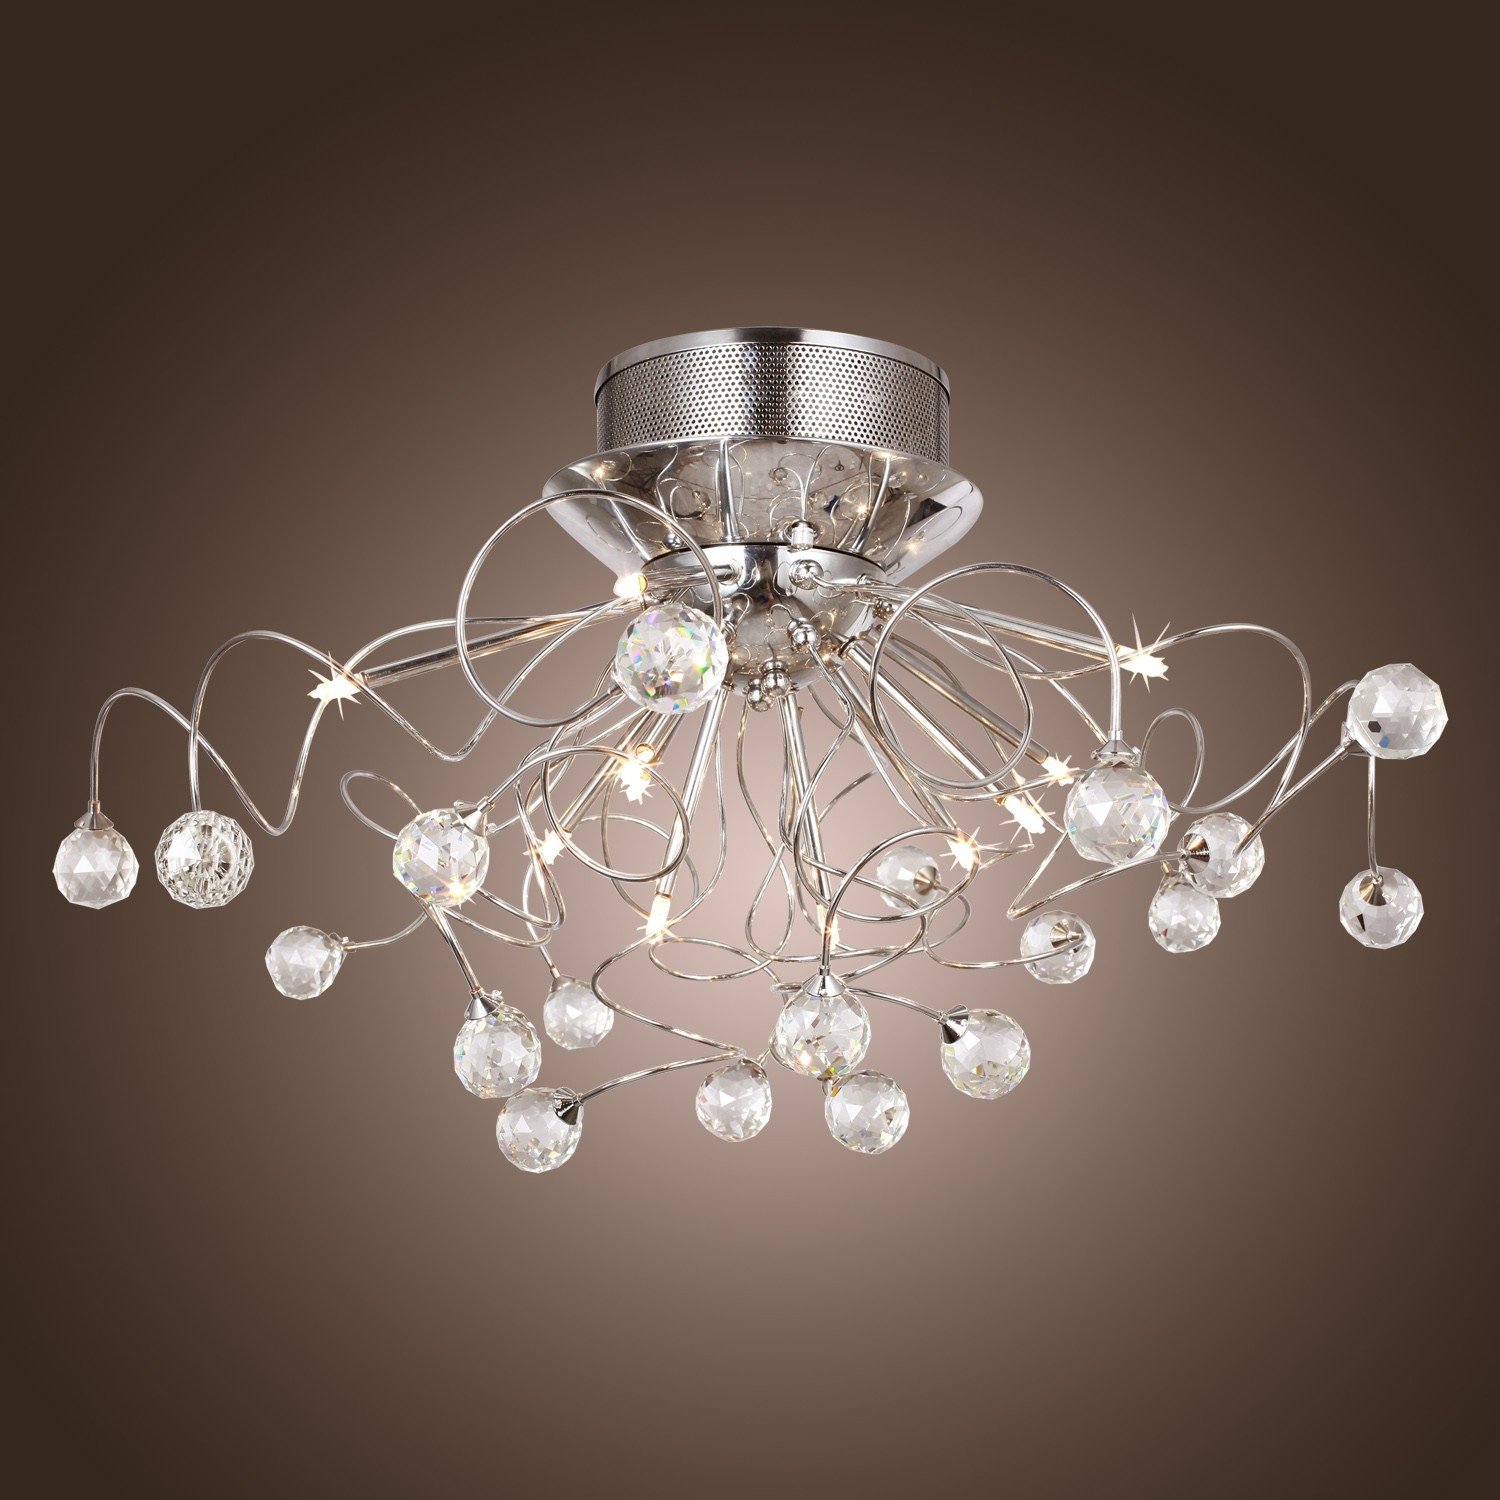 Modern Crystal Chandelier With 11 Lights Chrom Flush Mount Regarding Chandeliers For Hallways (Image 14 of 15)